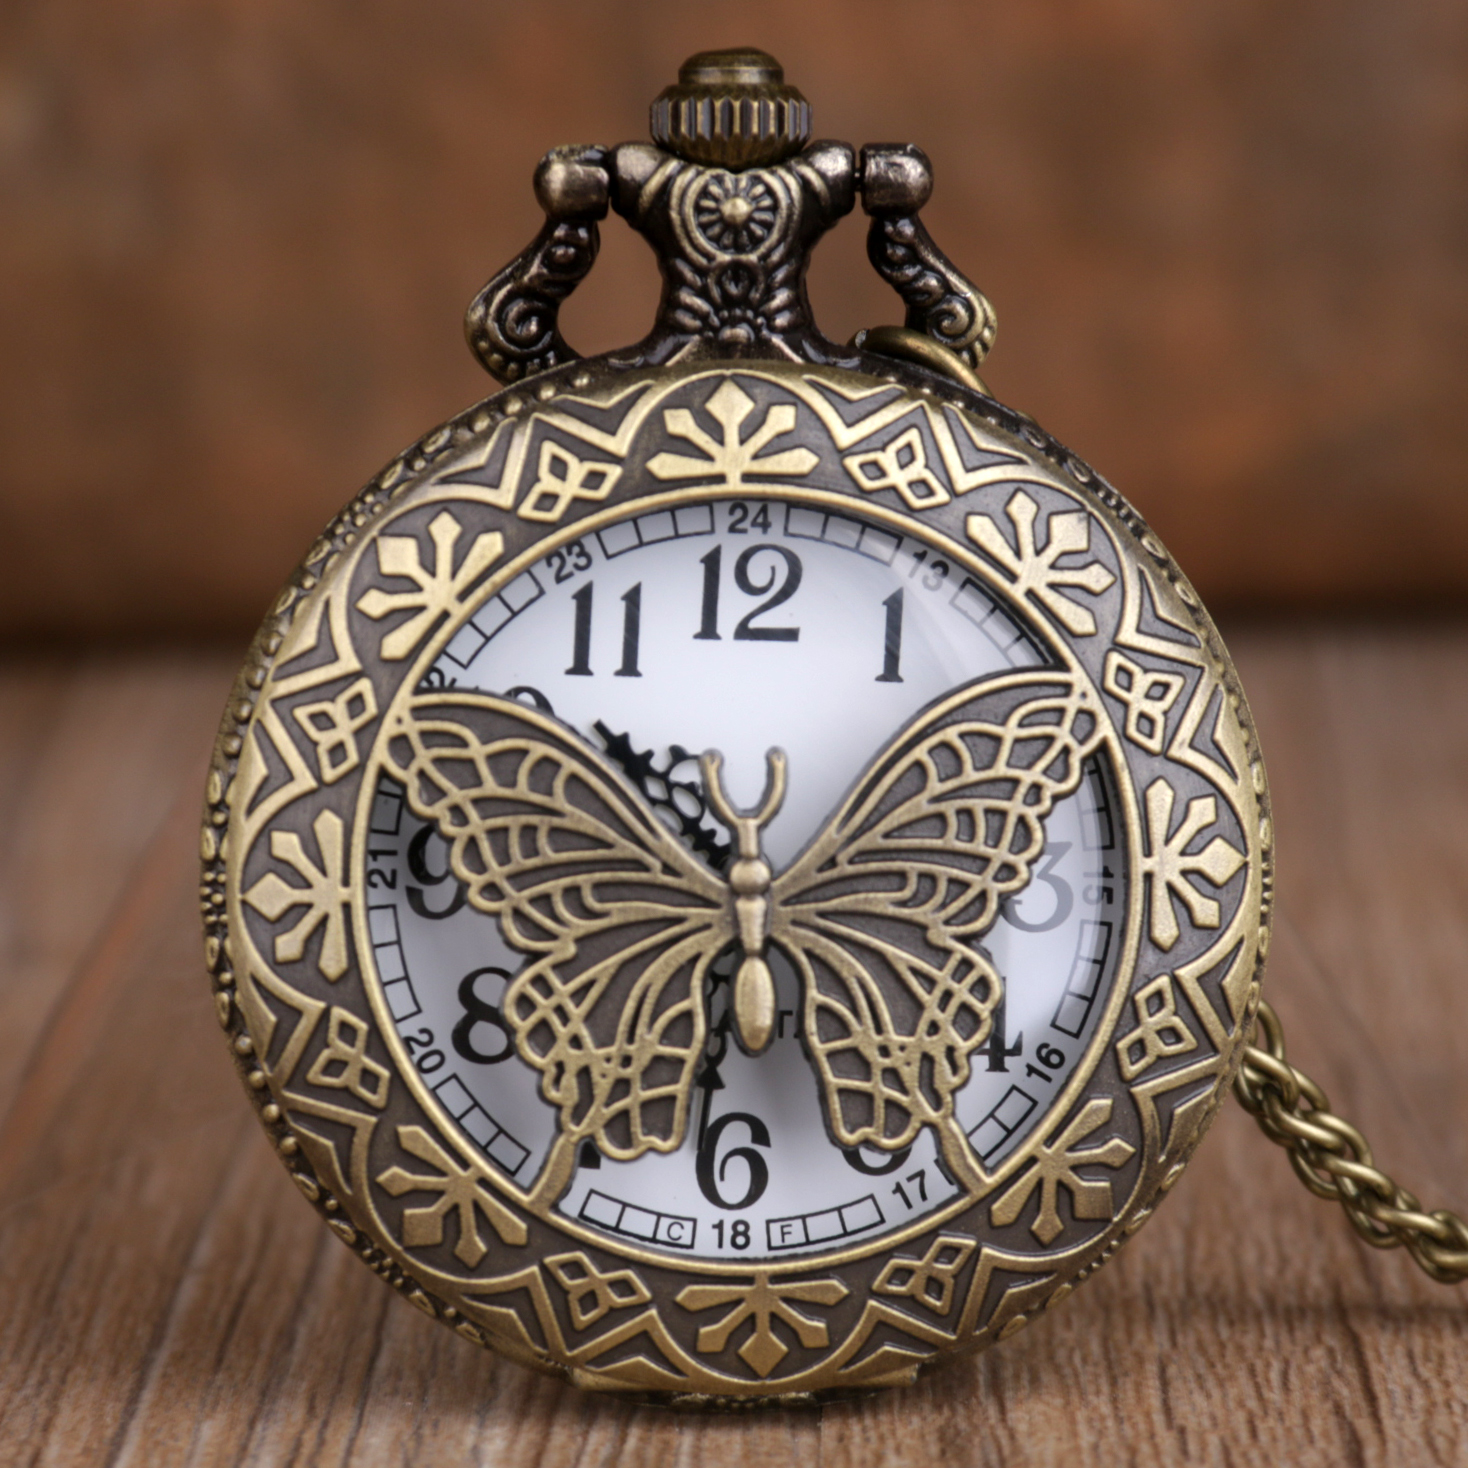 Permalink to New Vintage Bronze Quartz Pocket Watches Butterfly Carving Pocket Watches Fashion Unisex Pocket & Fob Watches Unique Gifts